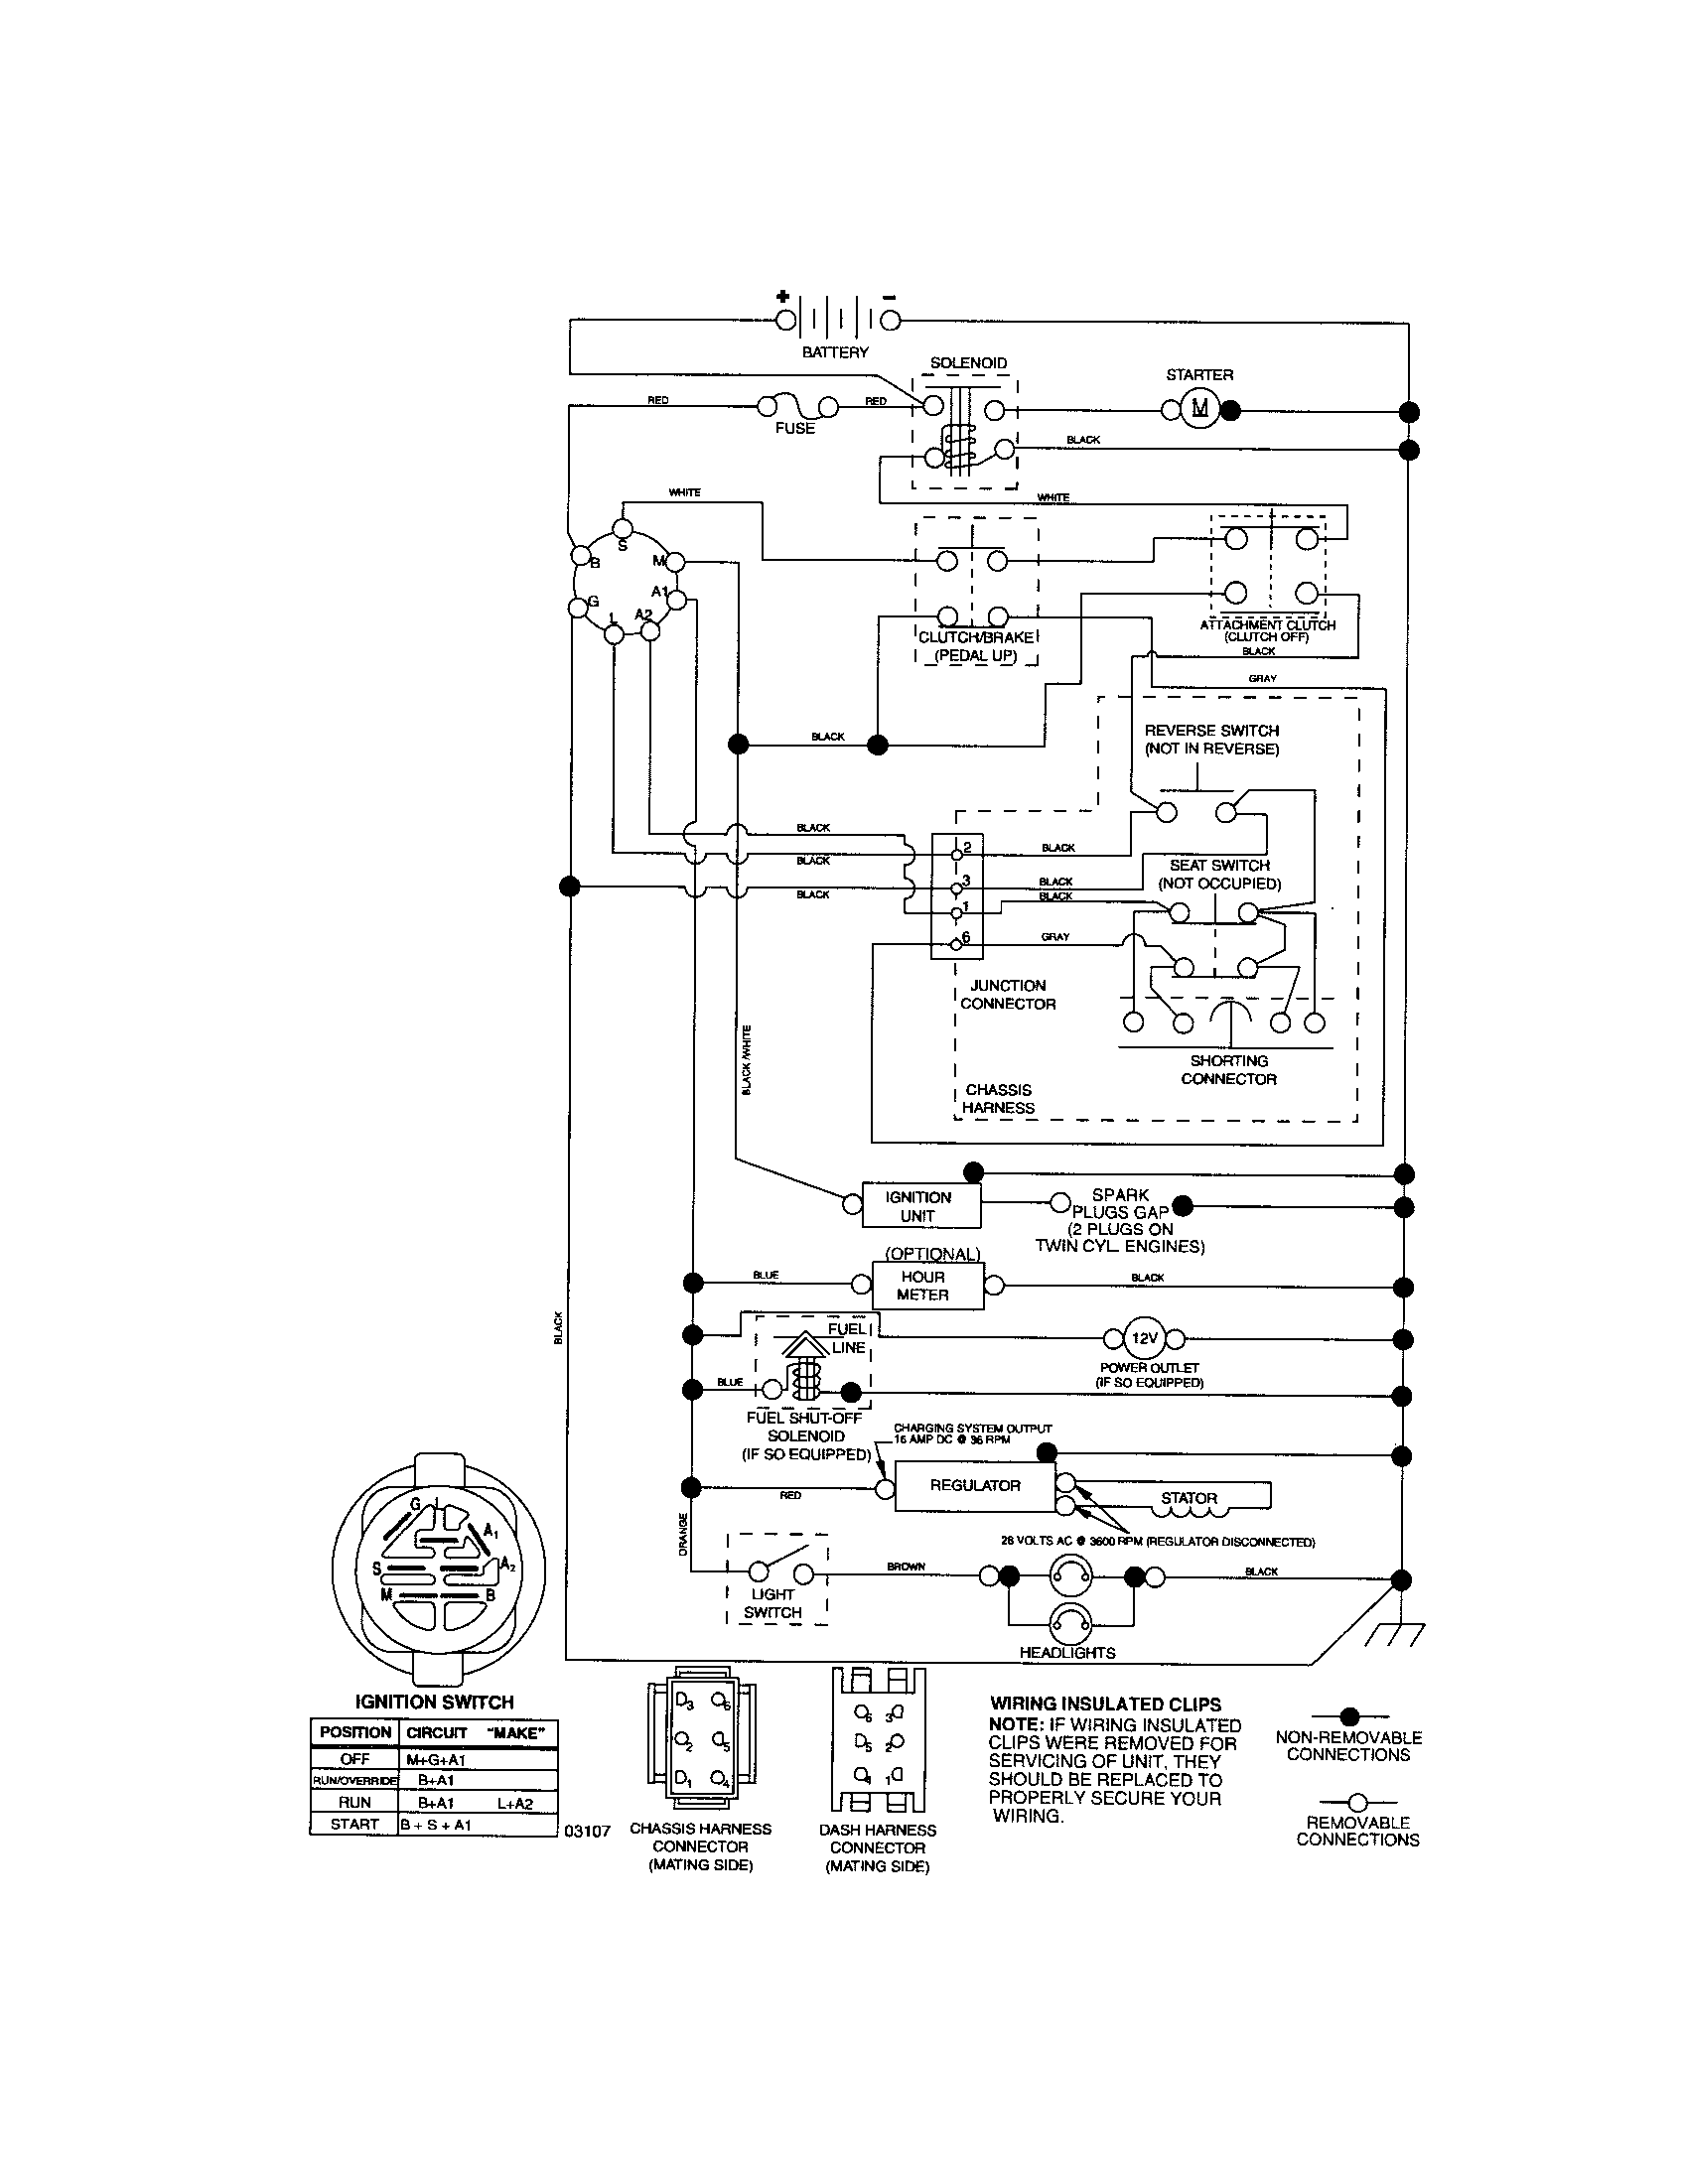 6af5f1447fd13c8443376822ddc1e105 craftsman riding mower electrical diagram wiring diagram craftsman lt1000 wiring diagram at gsmx.co